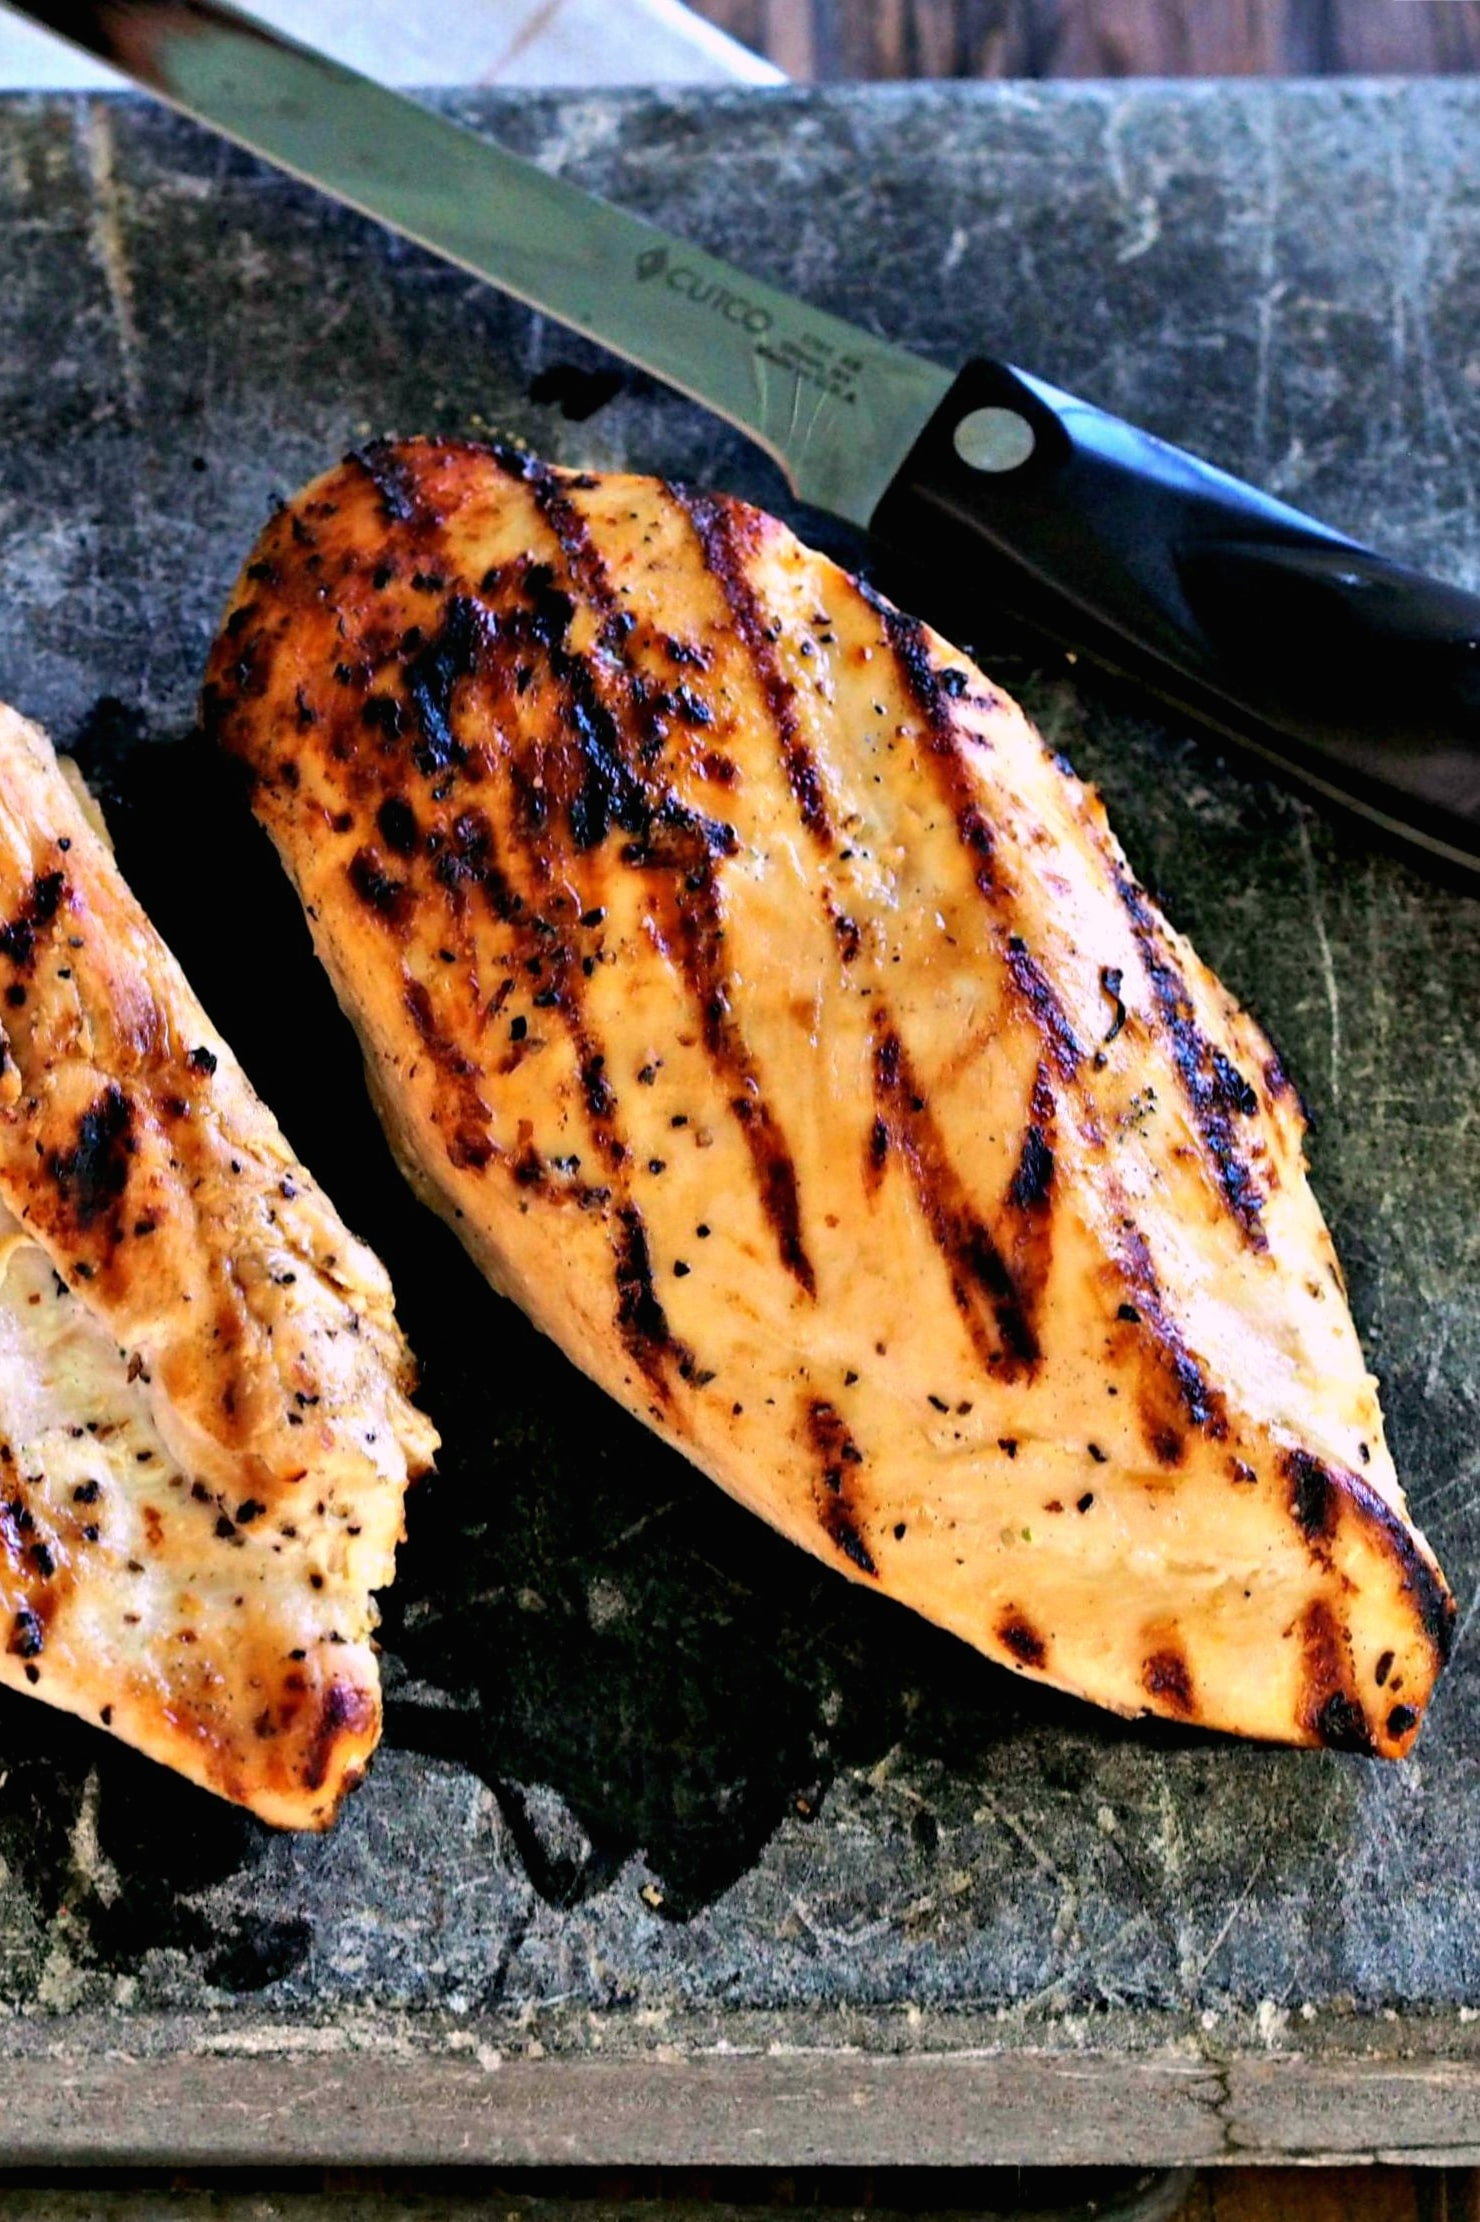 Perfect Skinless Boneless Grilled Chicken. Tenderized in buttermilk then grilled, these chicken breasts are tender, juicy, smoky, full of flavor & perfect. Simply Sated